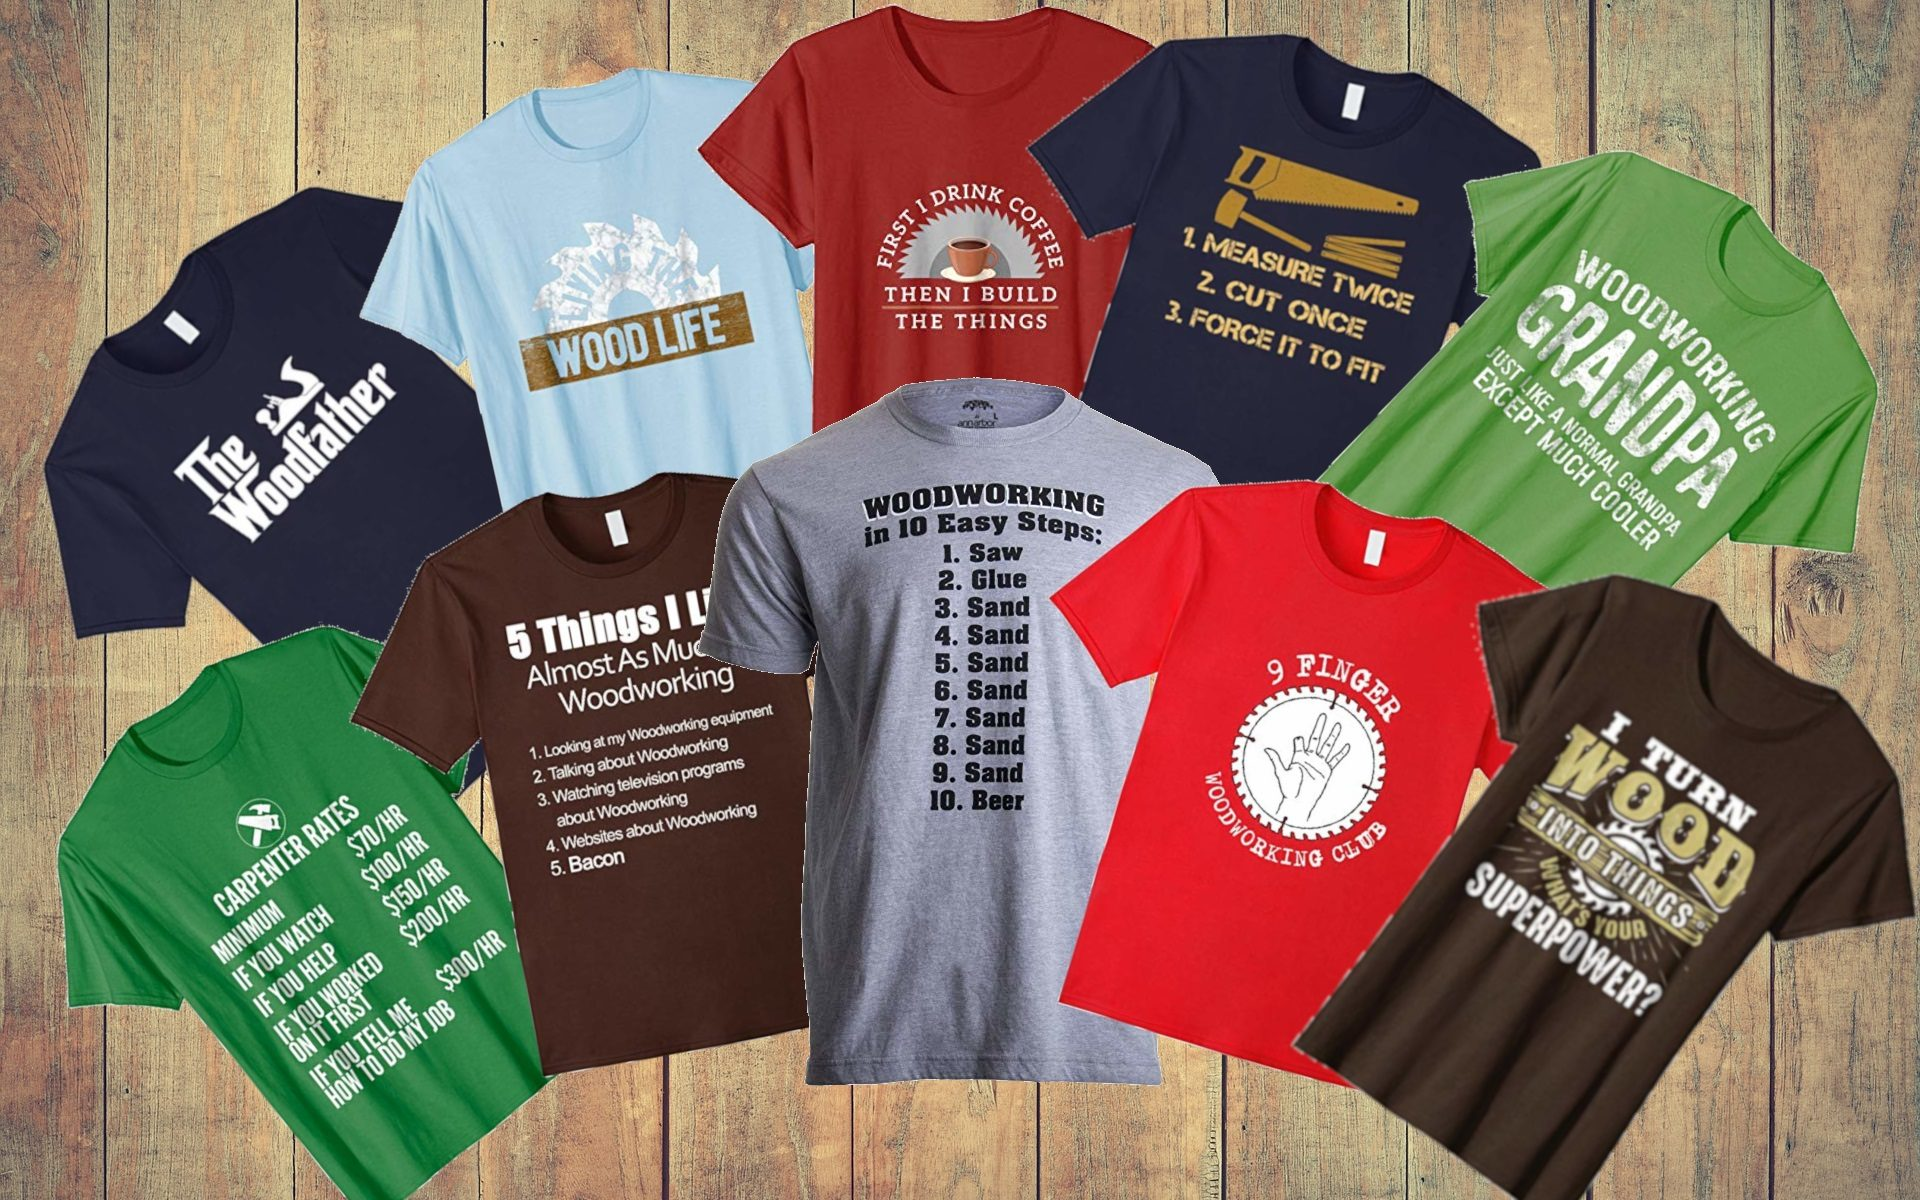 ae474452 😂😄😜😋 Funny Quotes on Woodworking T-Shirts by ...of woodworking